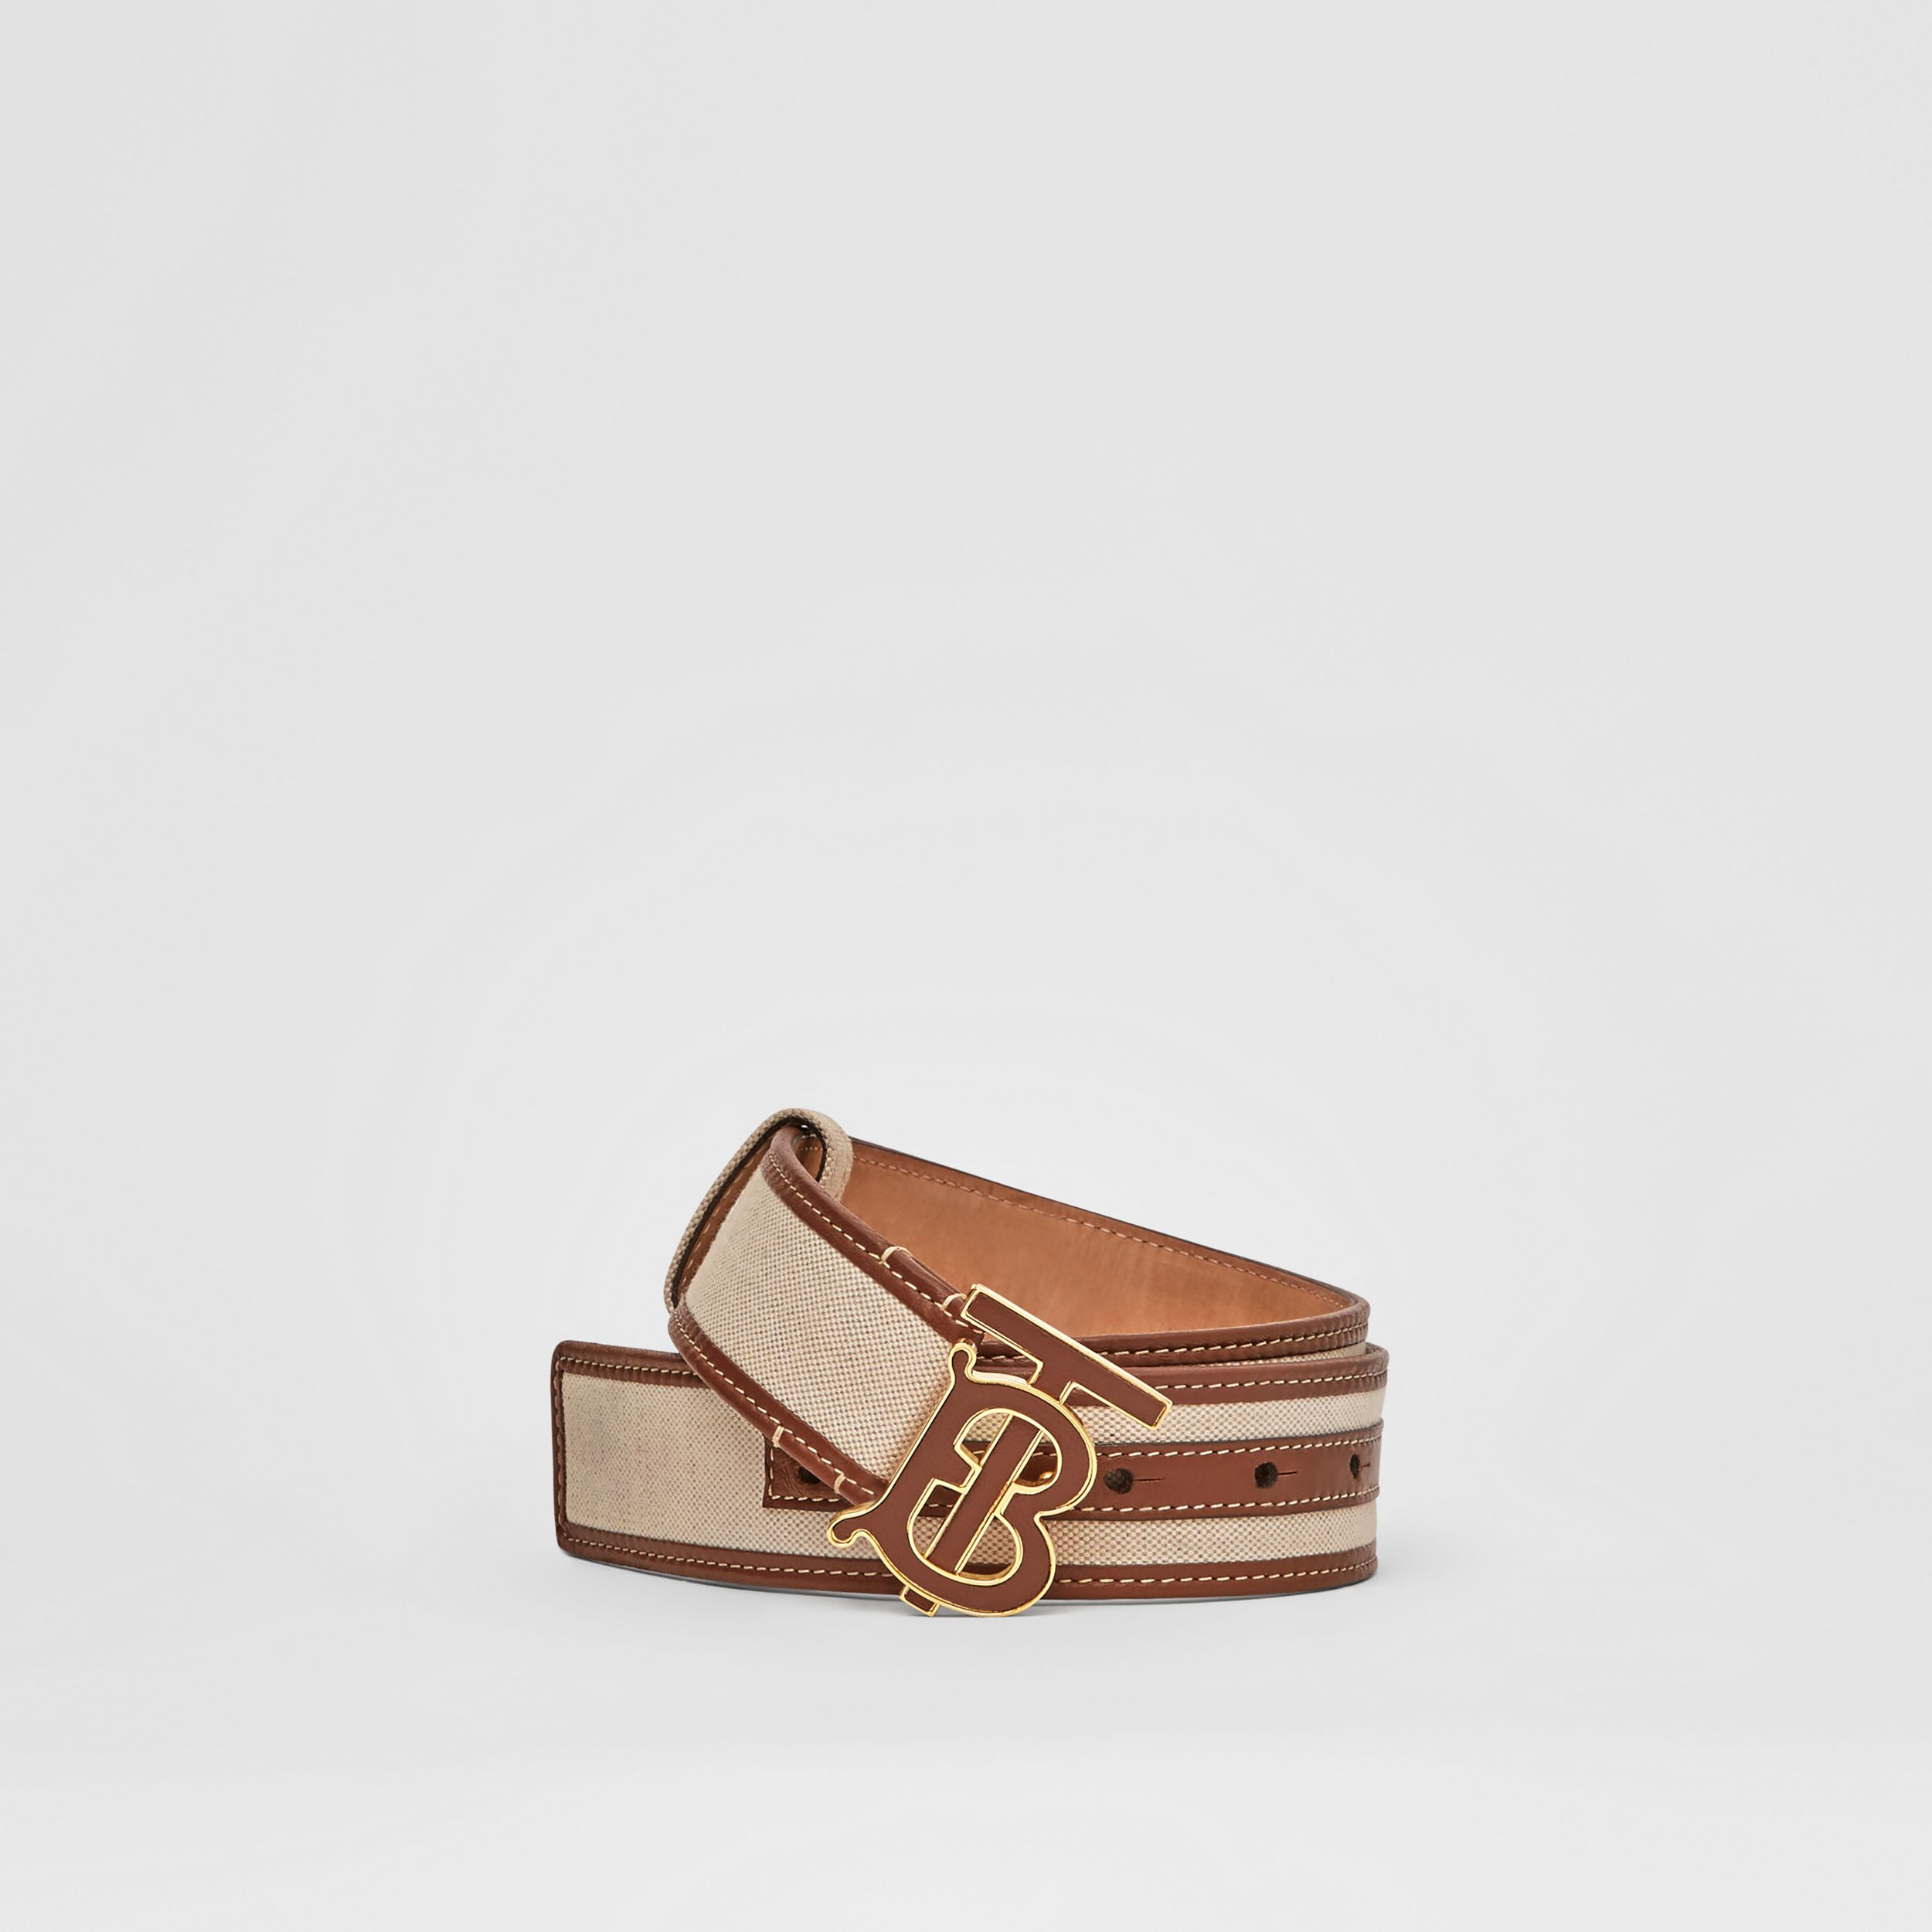 Monogram Motif Canvas and Leather Belt in Natural - Women | Burberry - 1